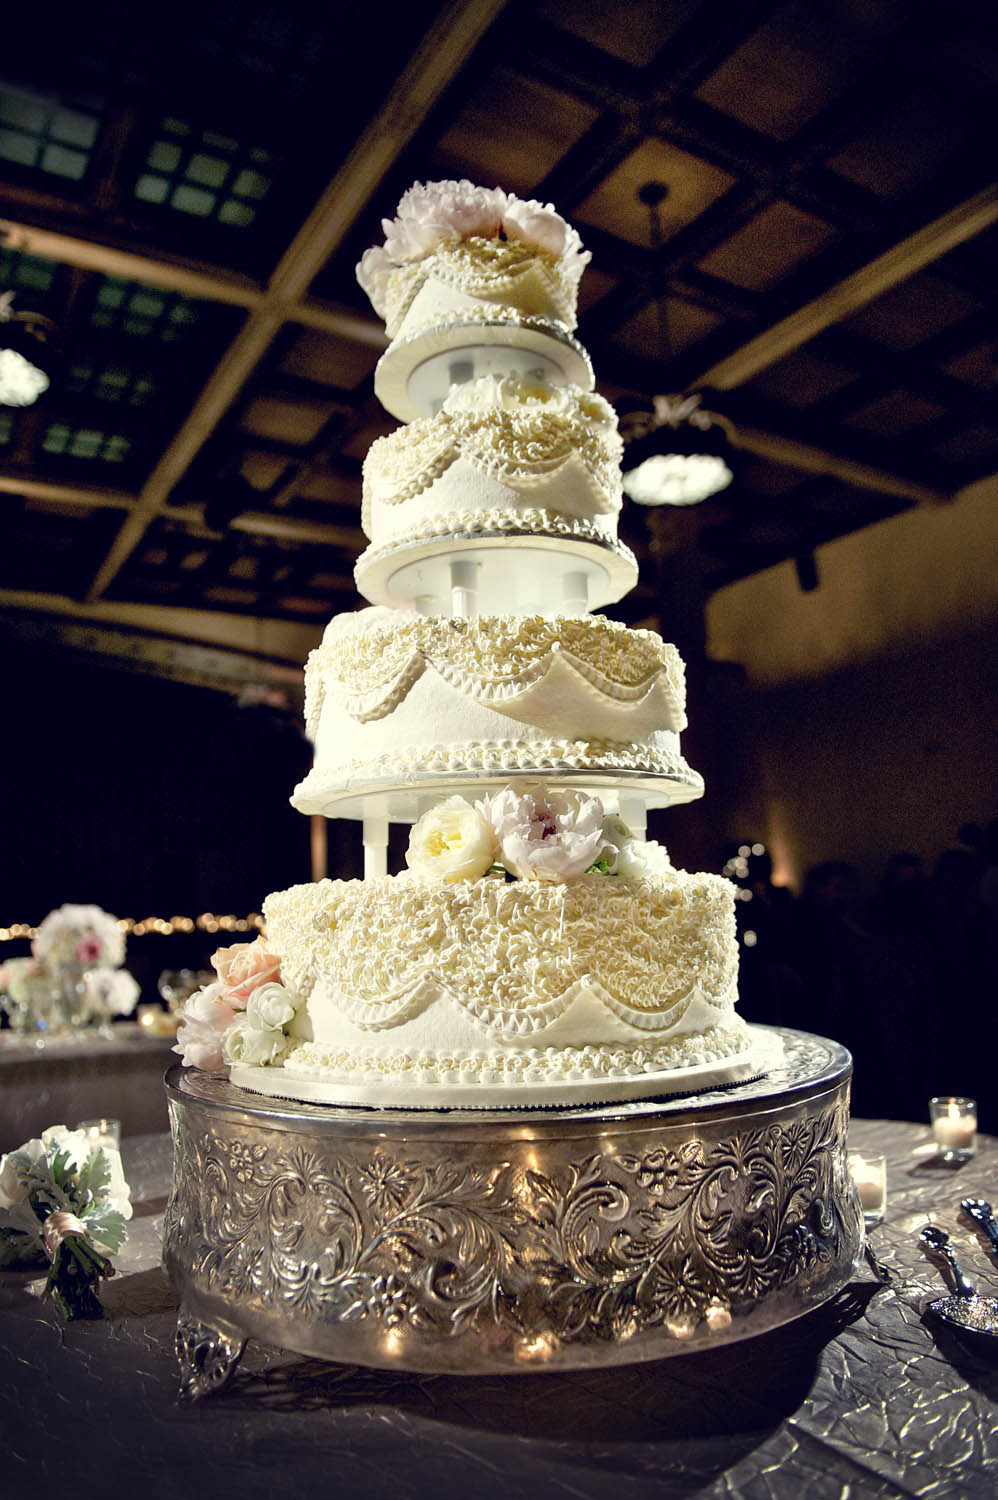 the-prado-wedding-cake-ian-andrew-photography-001.jpg